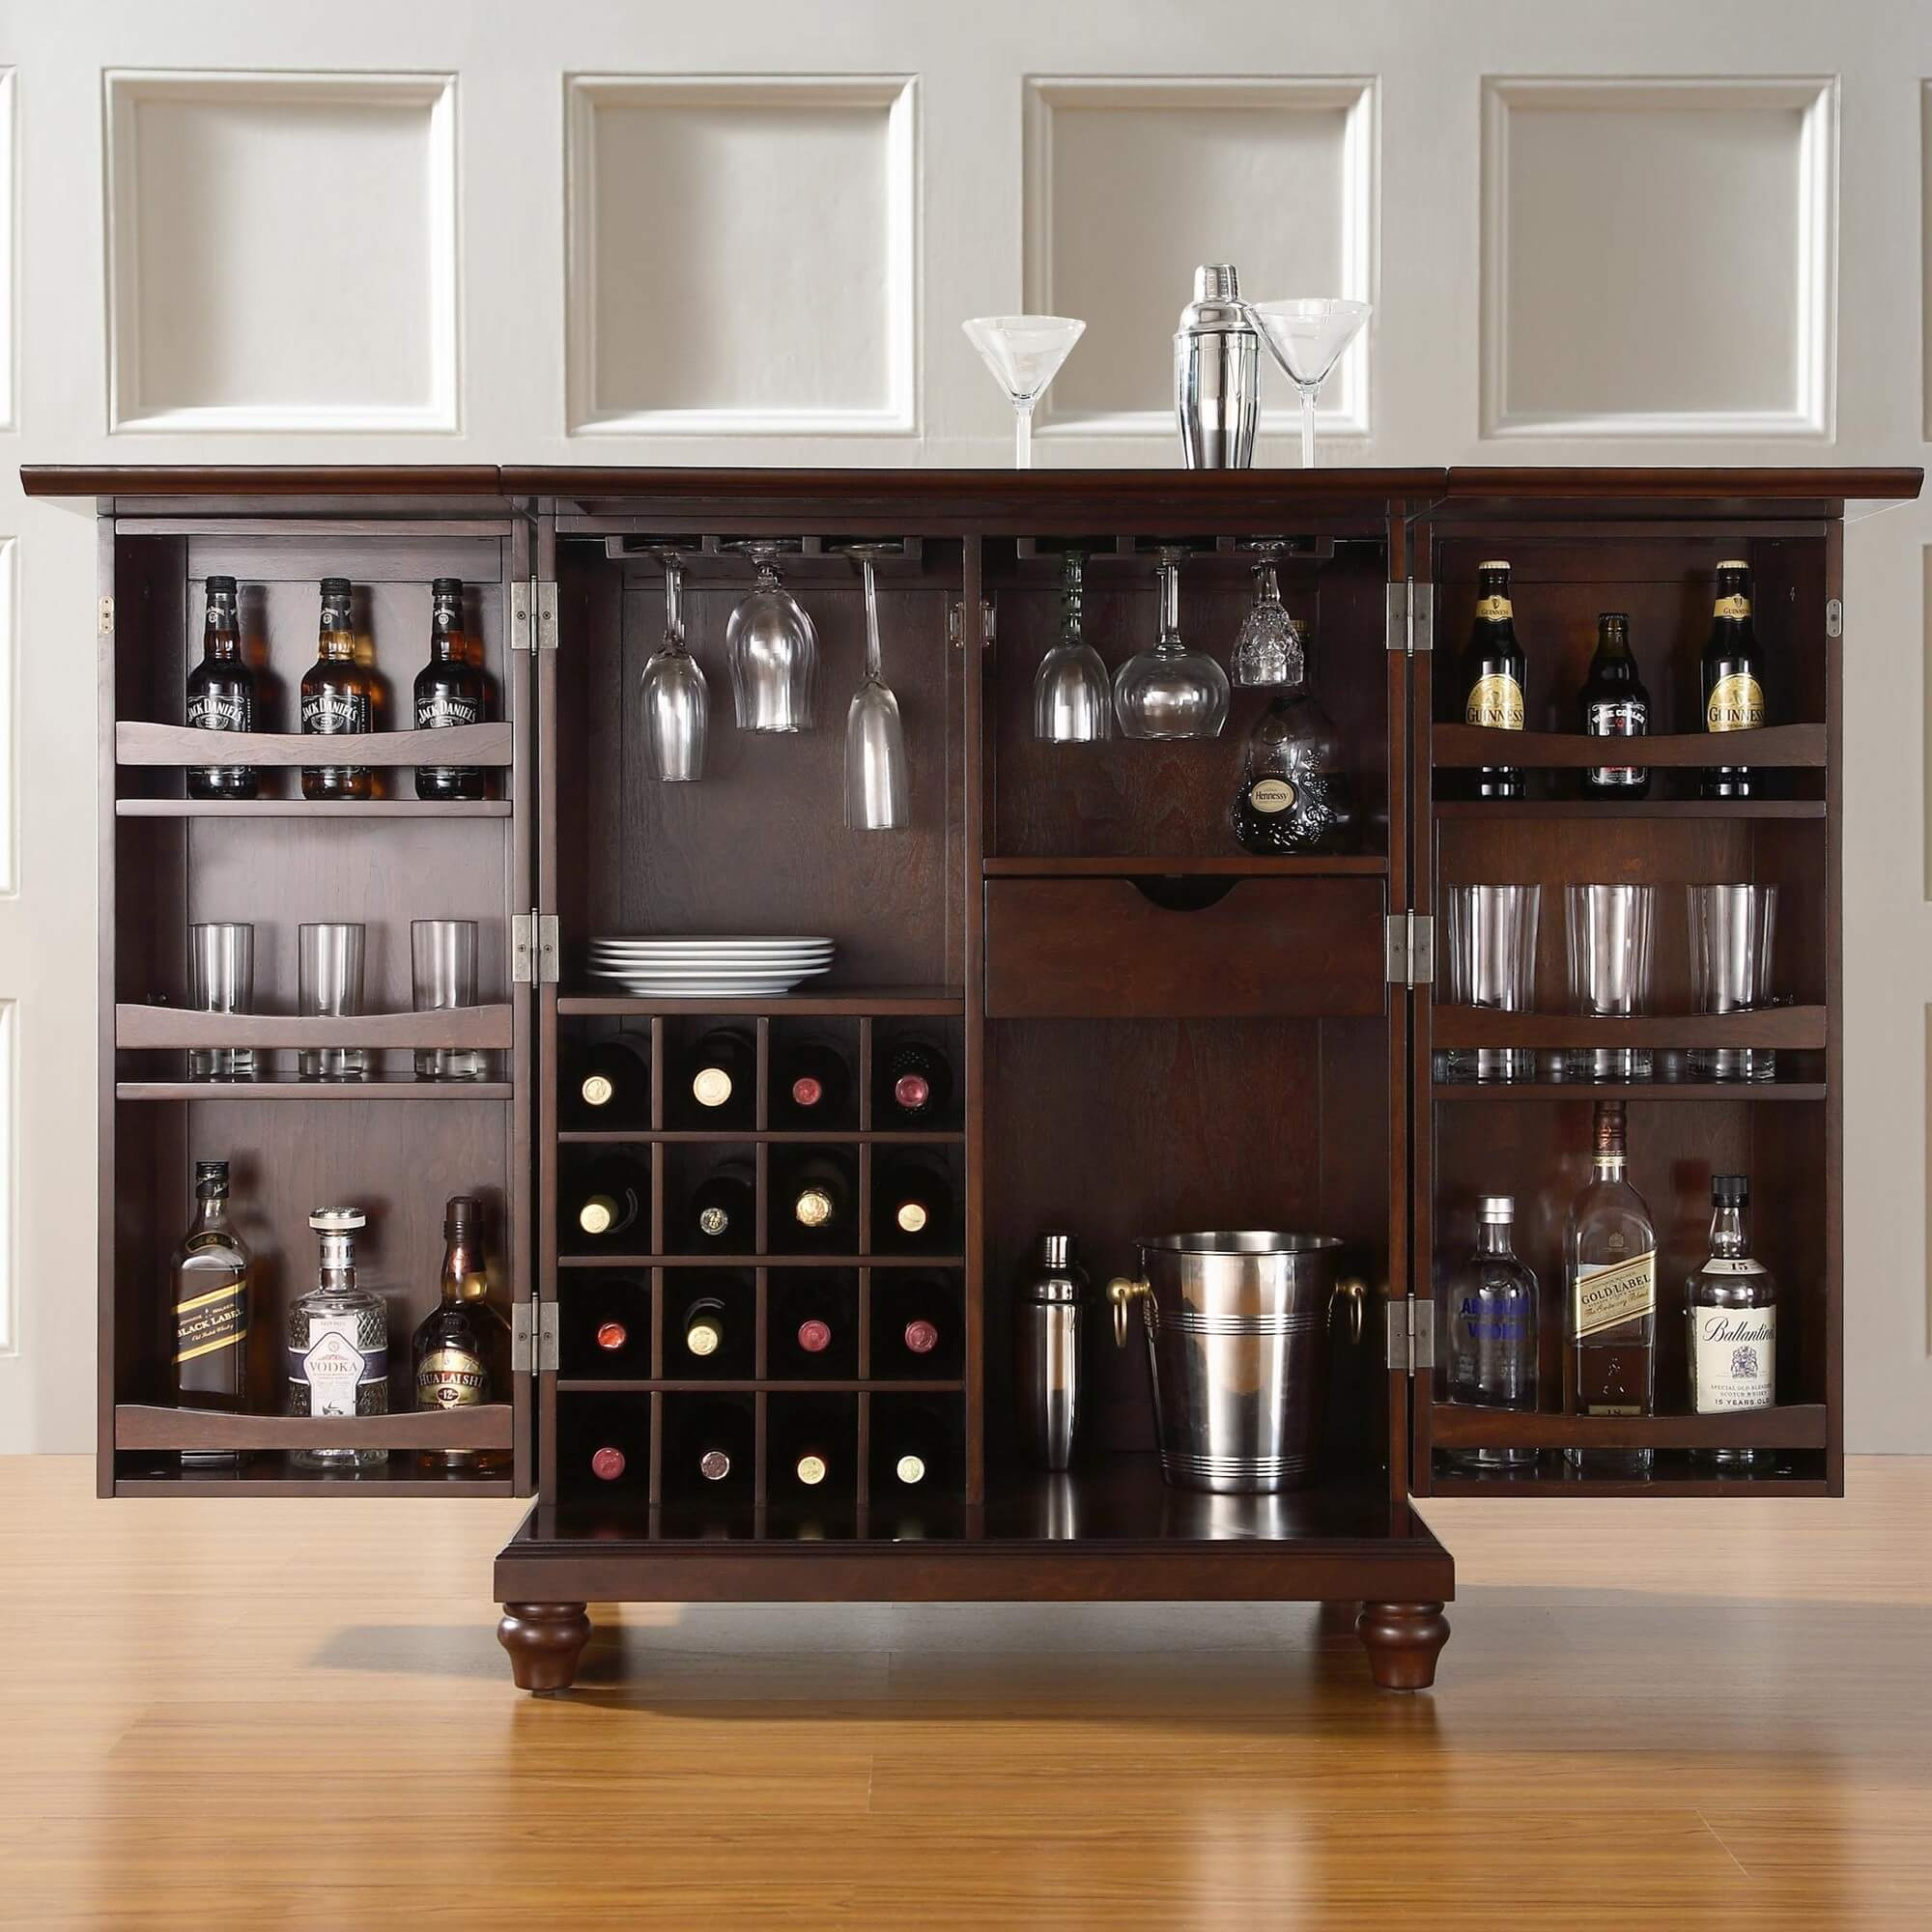 Rear storage view of elegant compact home bar cabinet set.